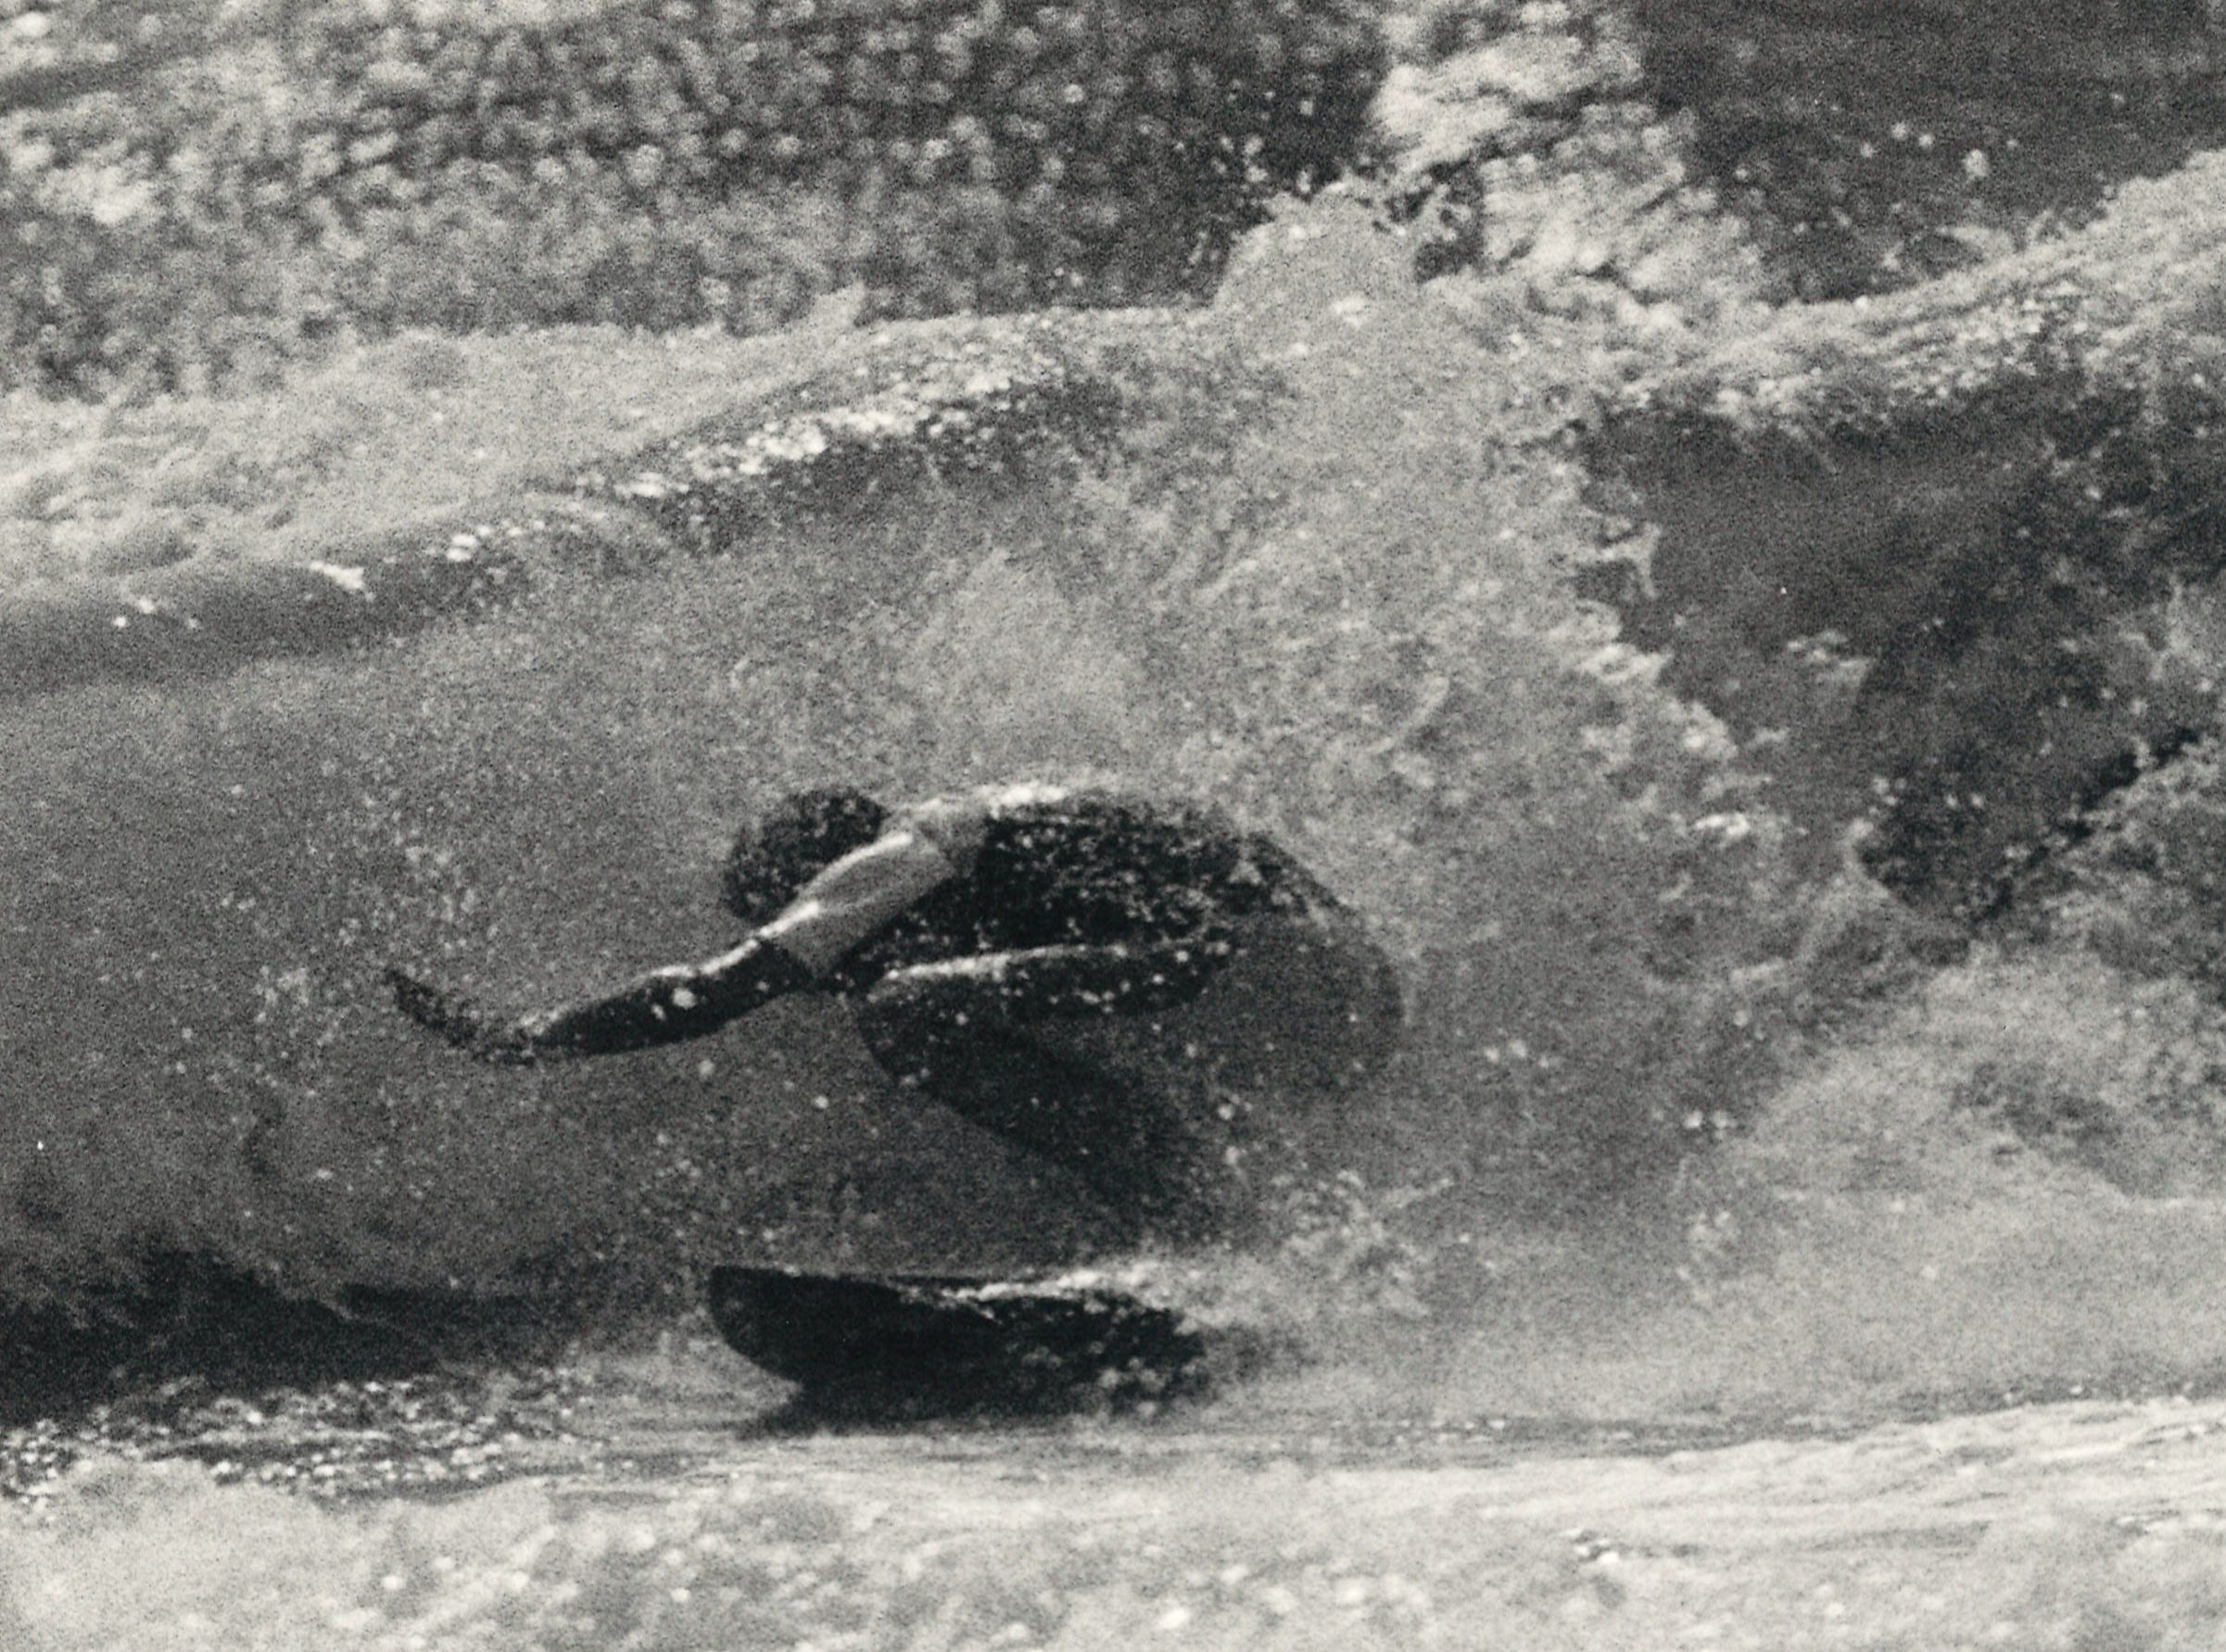 A surfer hits the waves during the Texas Pro/Am Surfing Classic at J.P. Luby Surf Park in Corpus Christi on April 4, 1985.